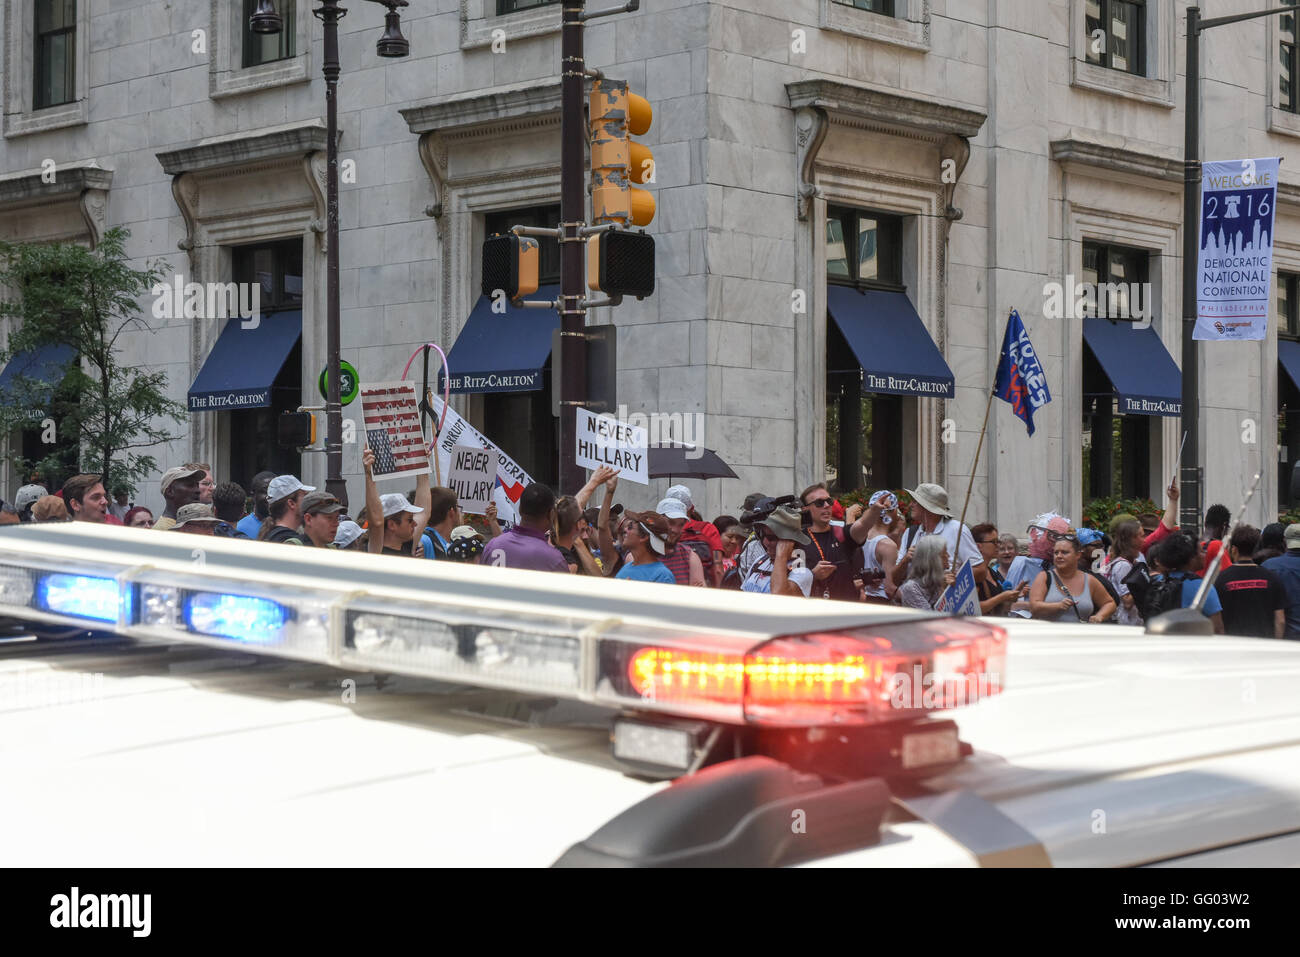 Bernie Sanders protestors rally peacefully behind police protection - Stock Image